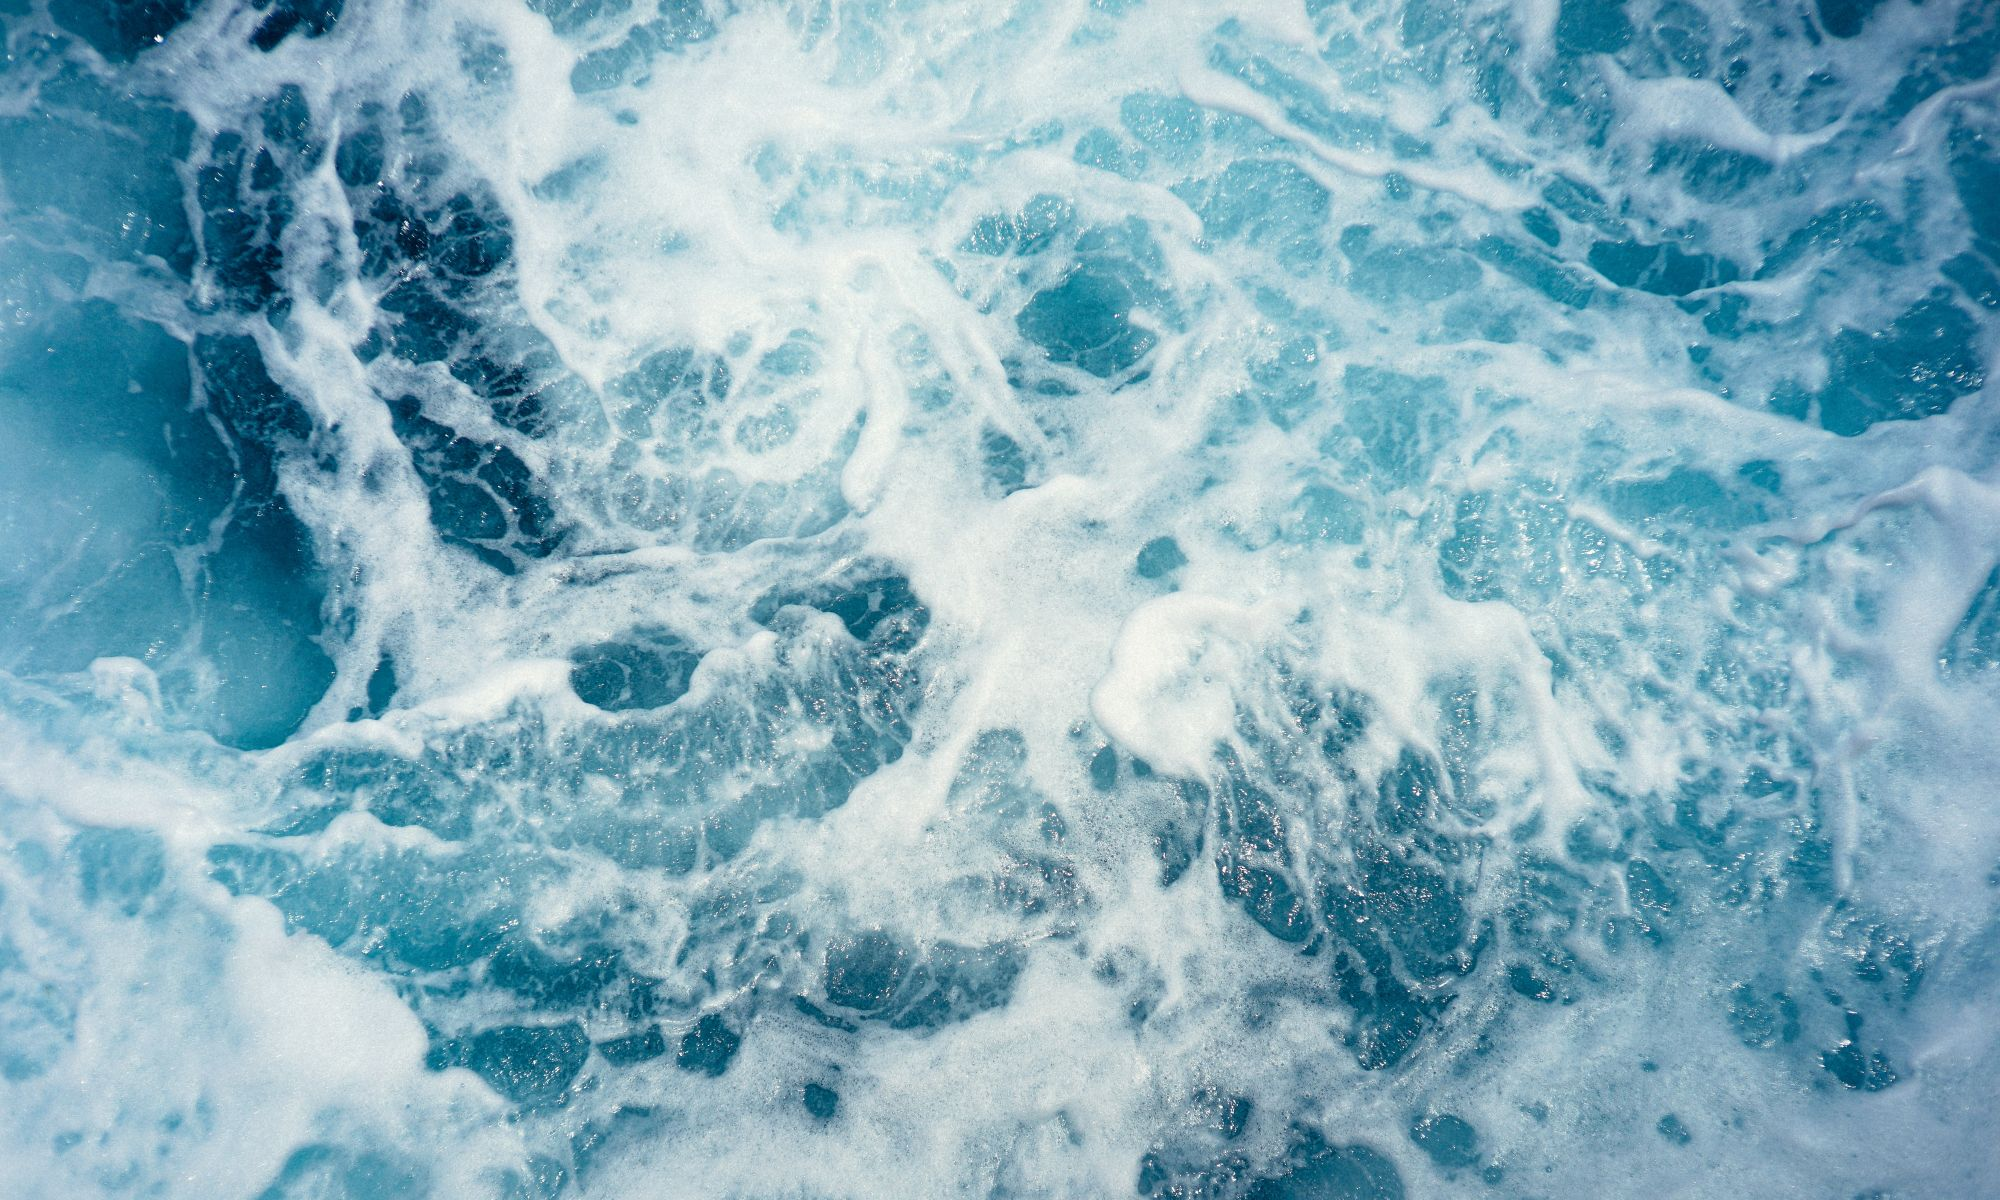 Turbulent waters. Photo credit: Christoffer Engstrom/unsplash